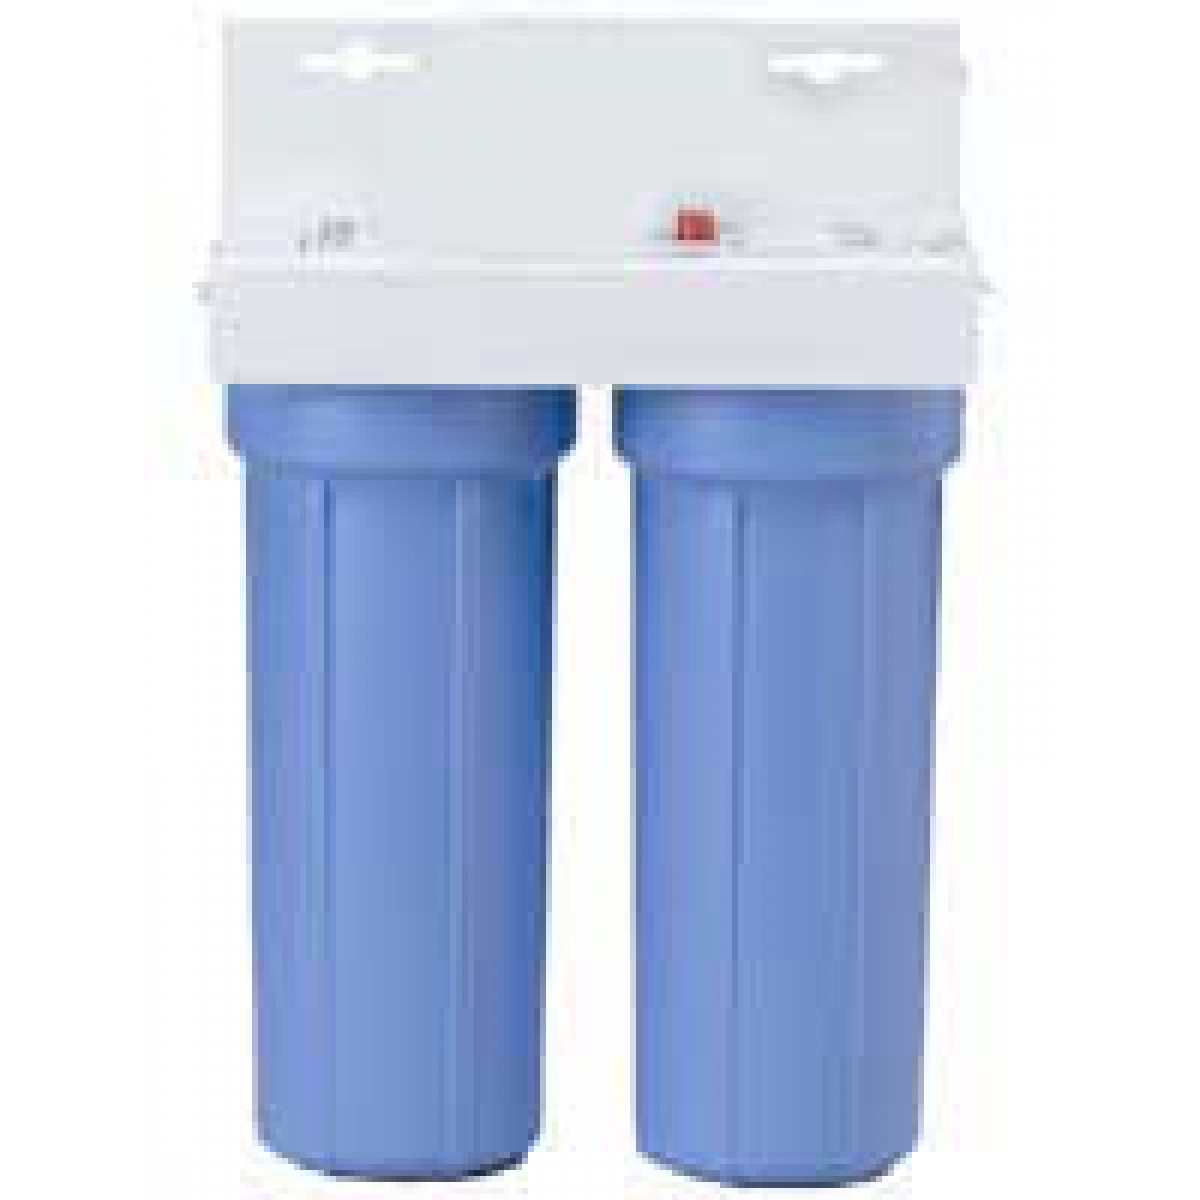 Harmsco Huc 200 Under Counter Water Filter System